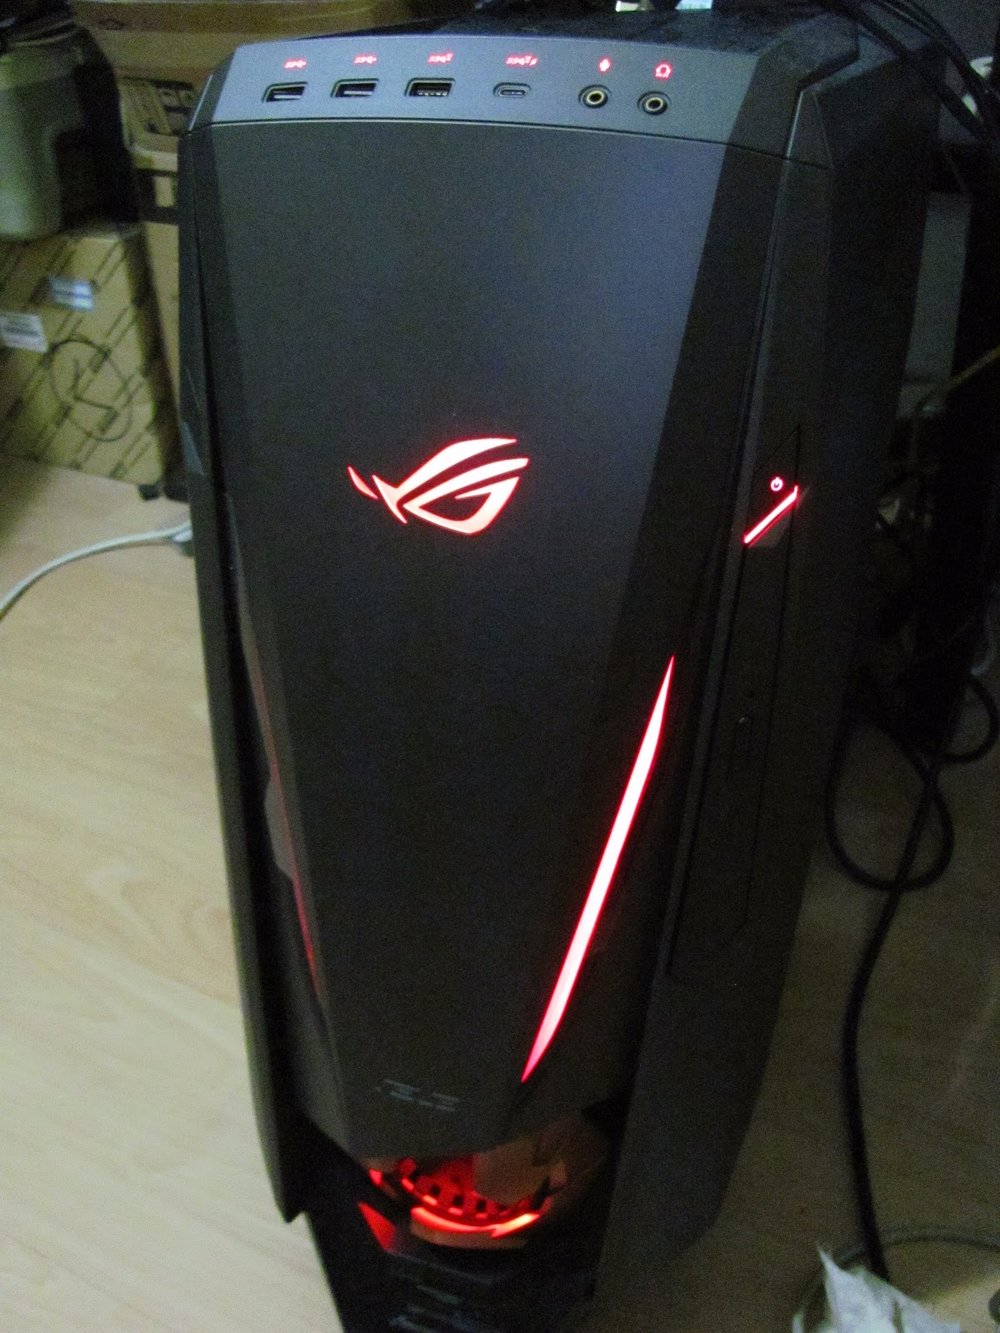 I don't actually appreciate LED all that much, however it will look right at home with any red-themed and red or multcolored LED'd gaming gear with a black frame.